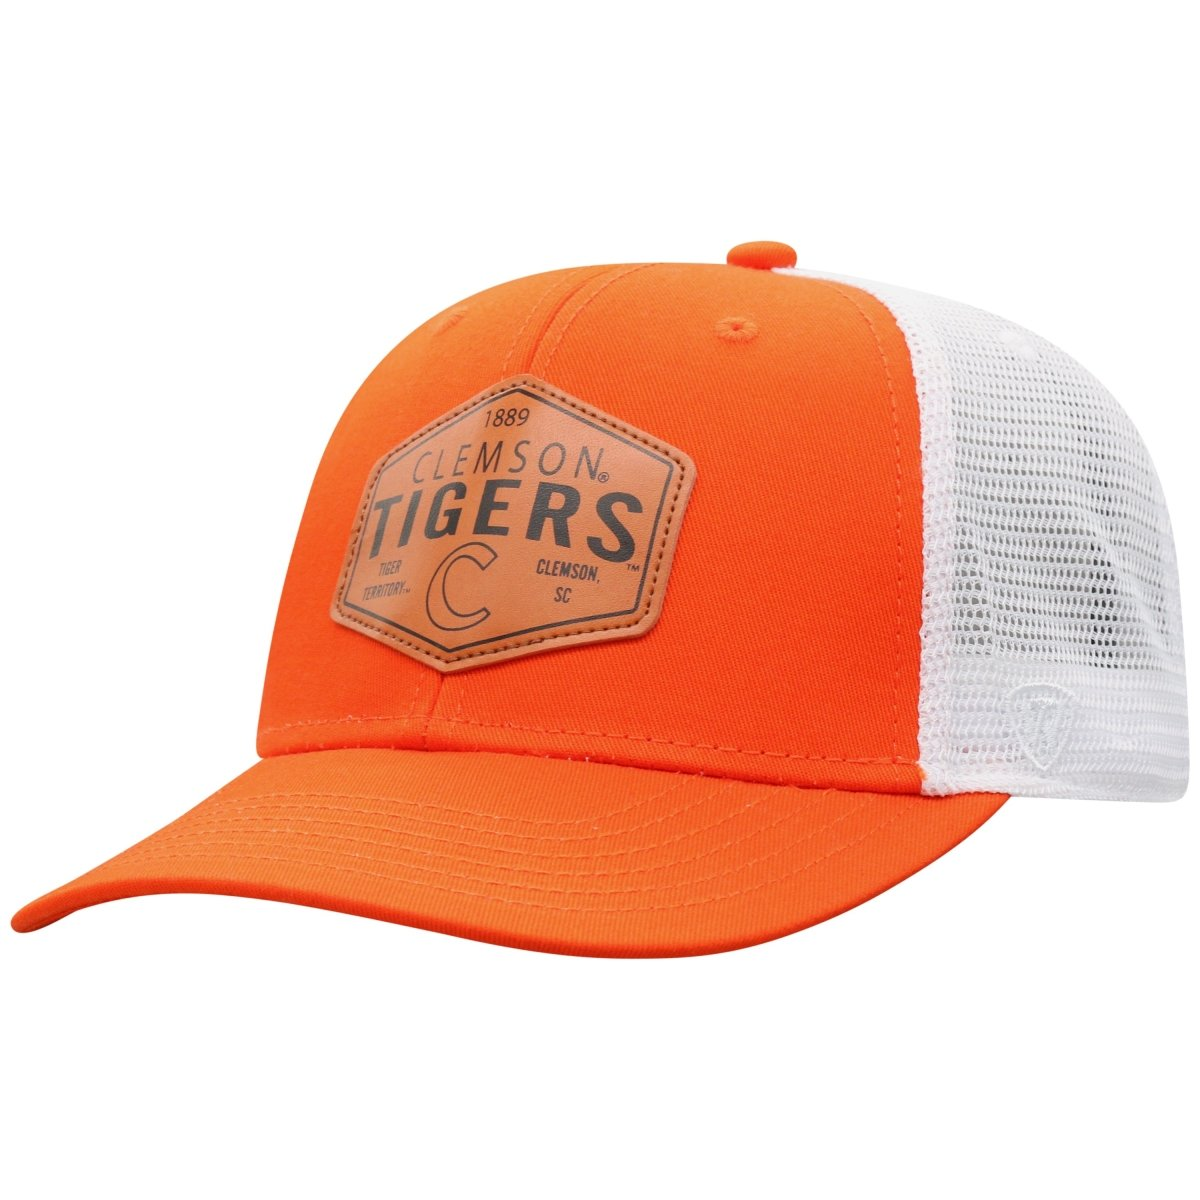 Top of the World Clemson Tigers Edge Trucker Hat With Leather Shield - Mr. Knickerbocker